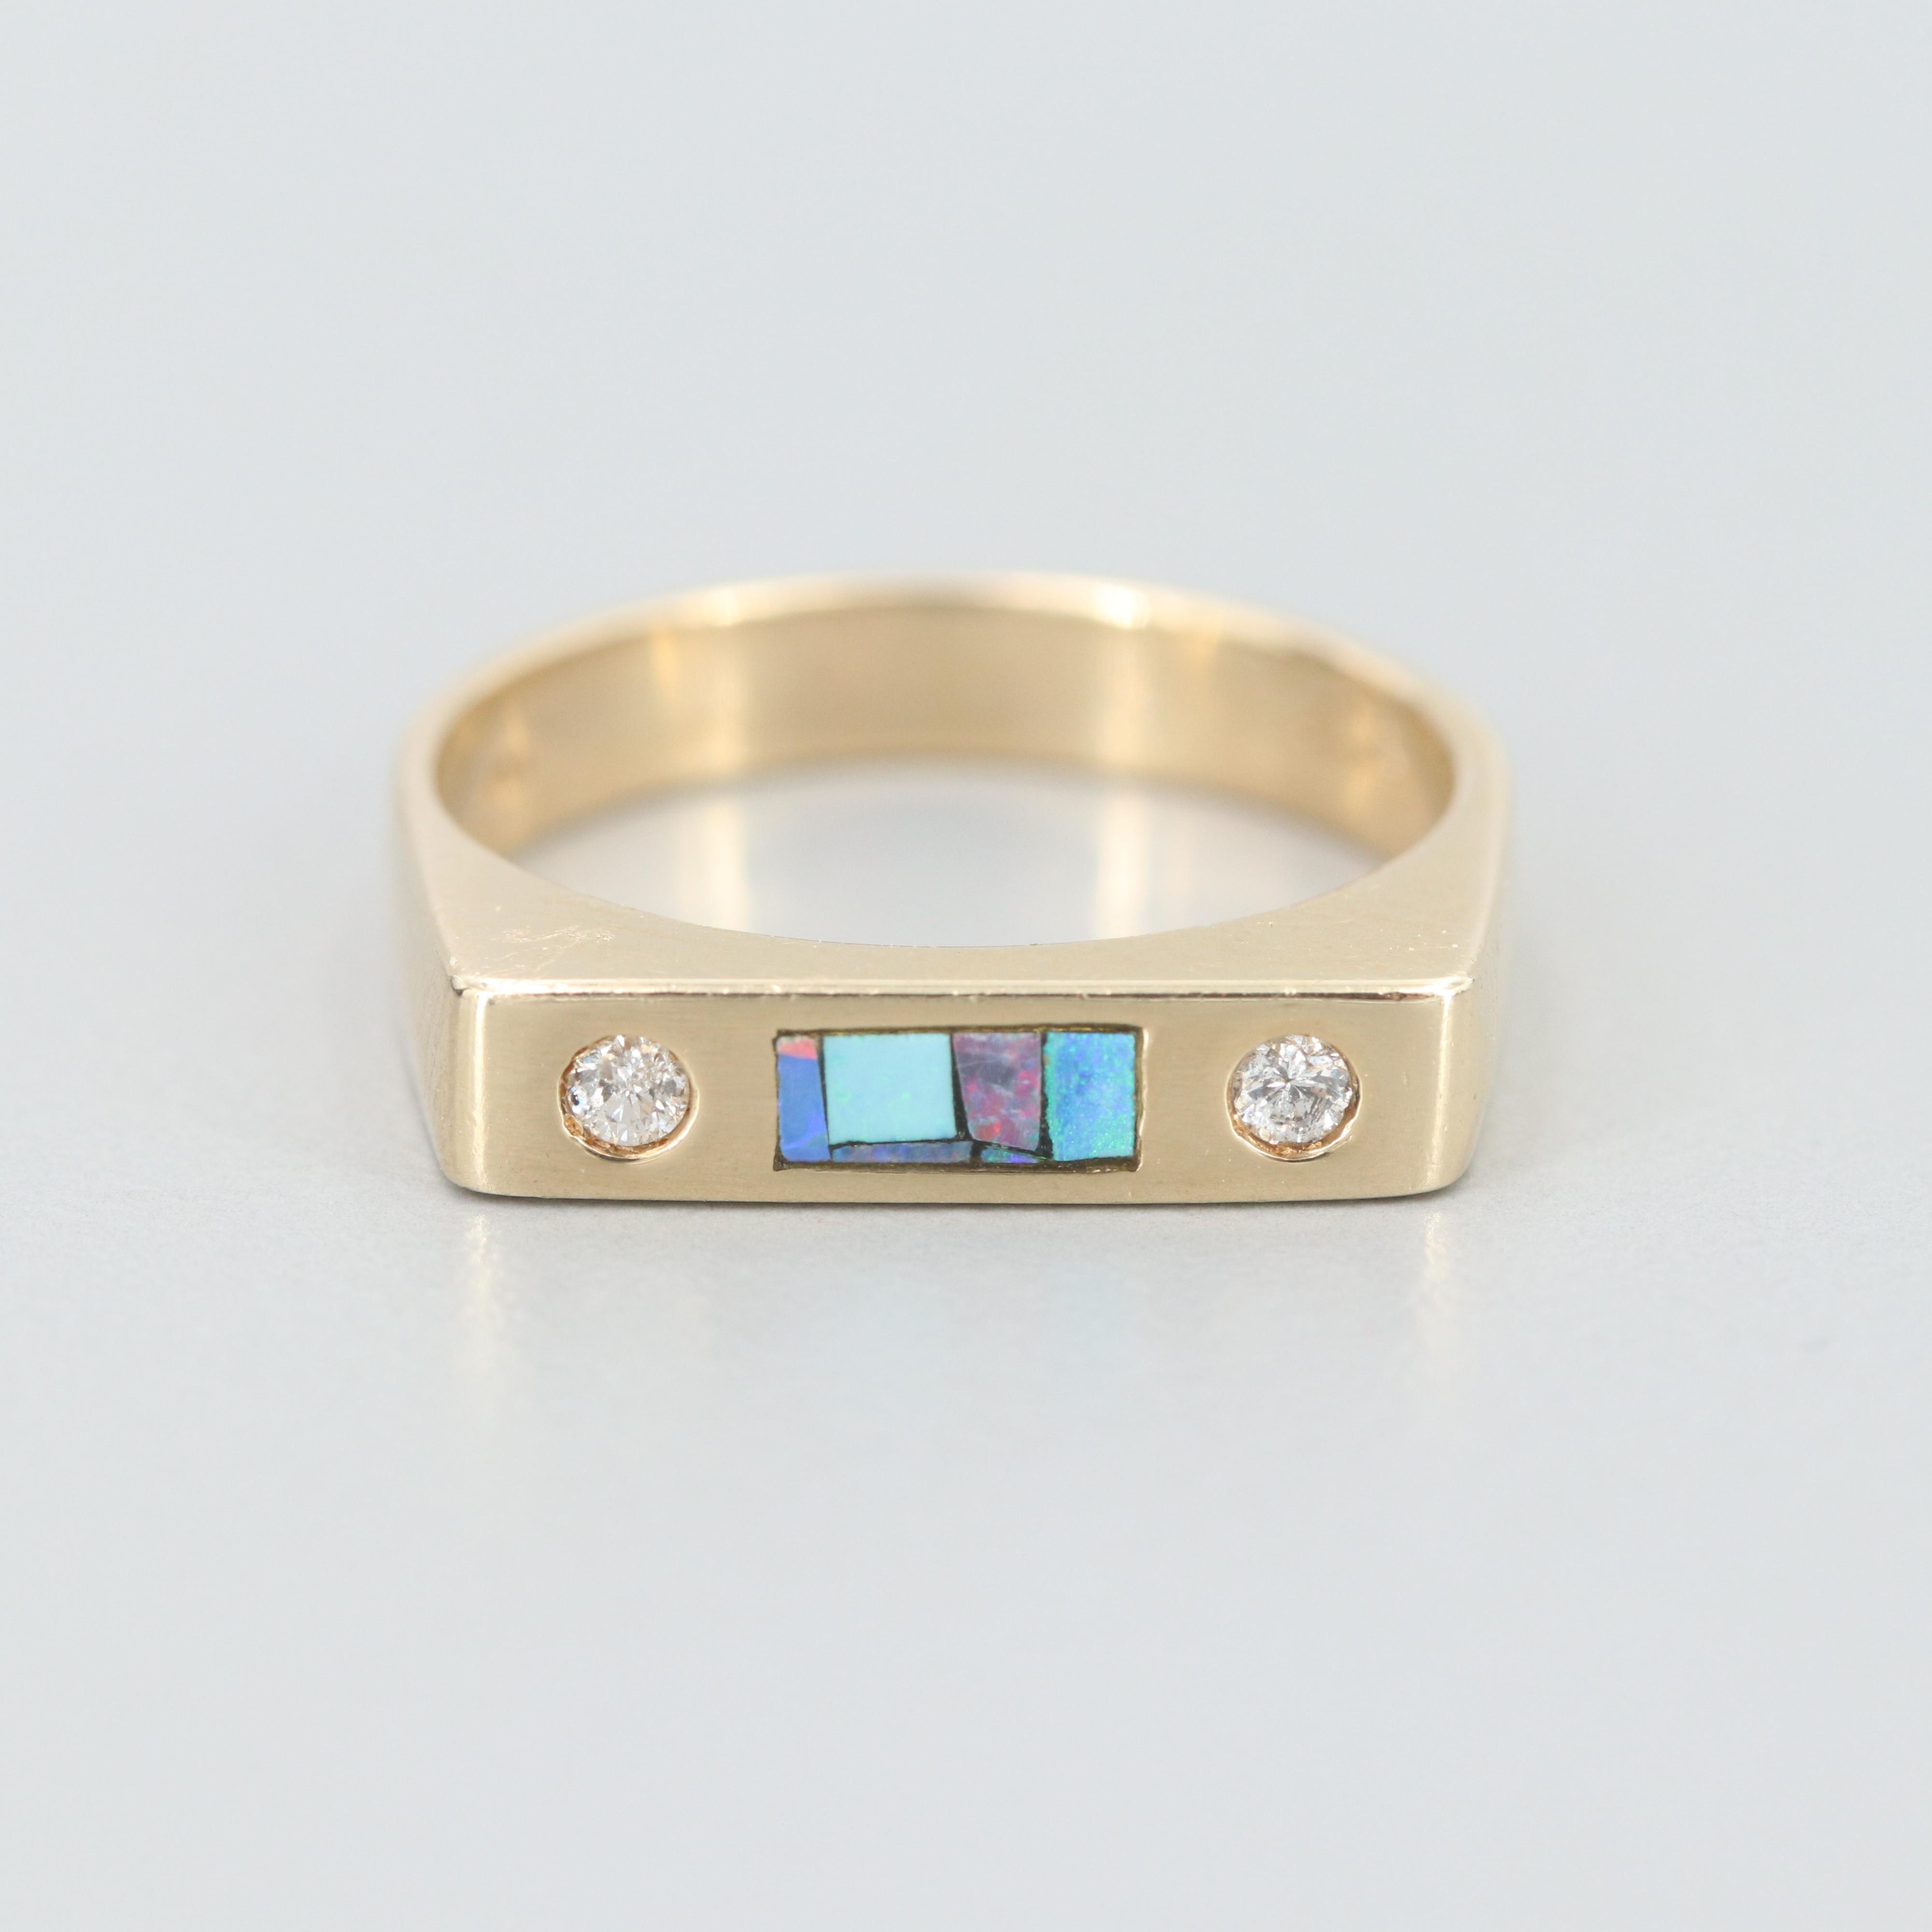 14K Yellow Gold Diamond and Opal Inlay Ring